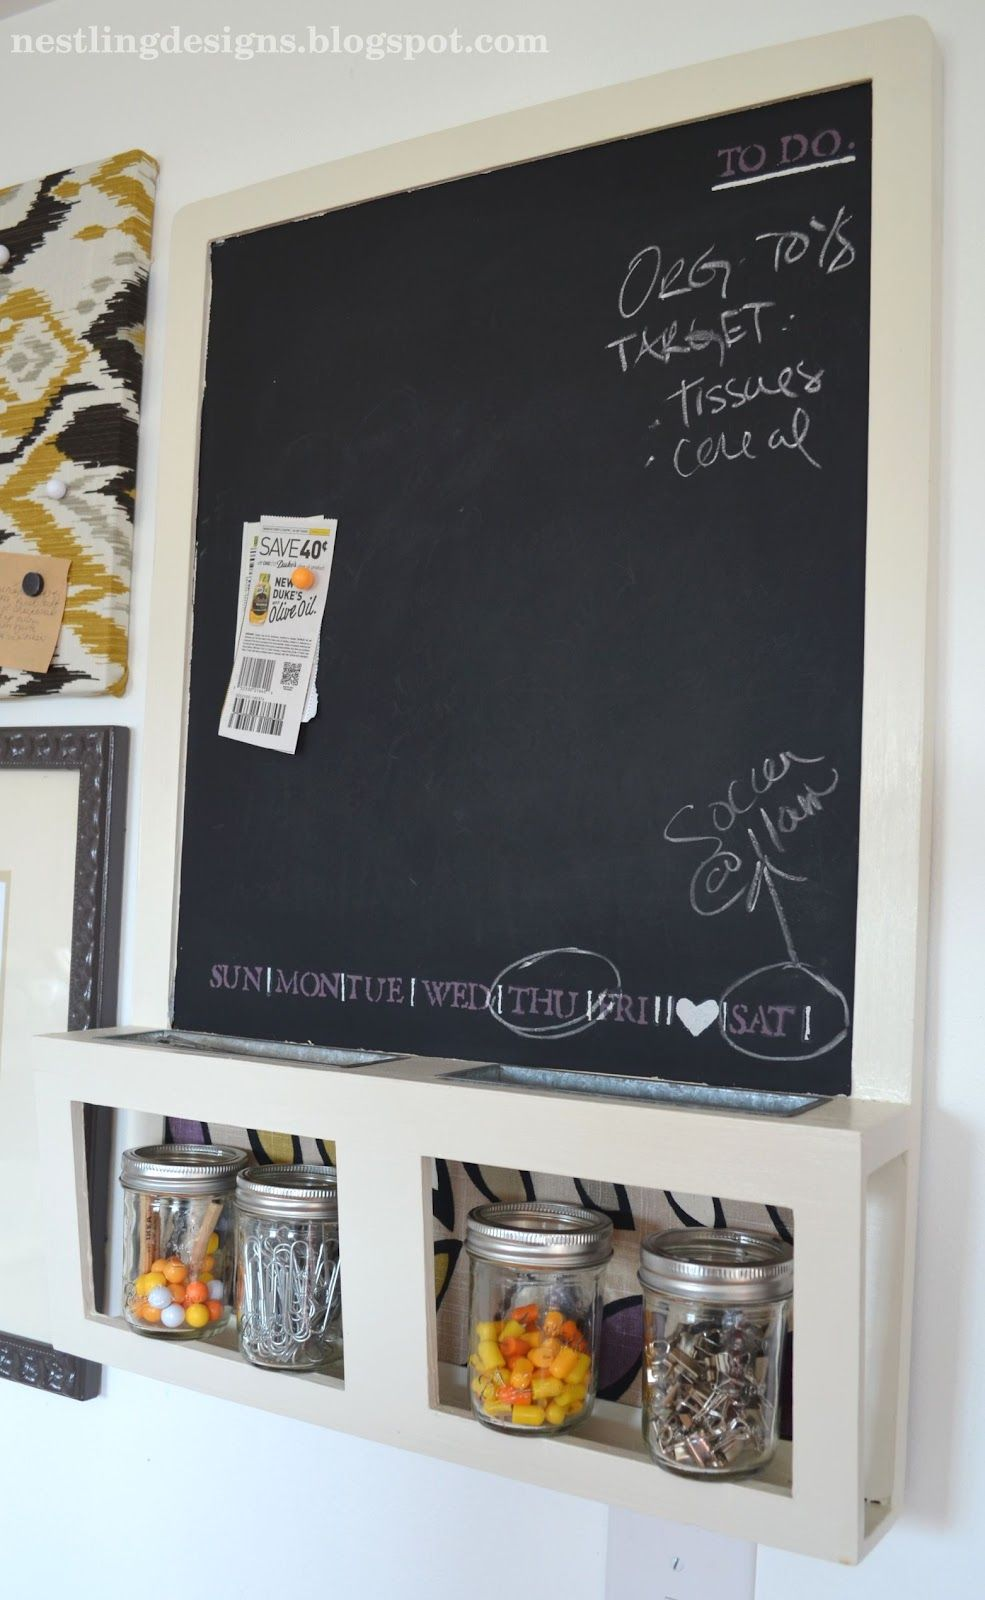 Ikea Chalkboard Redo We Have The Easel Board From Ikea But This